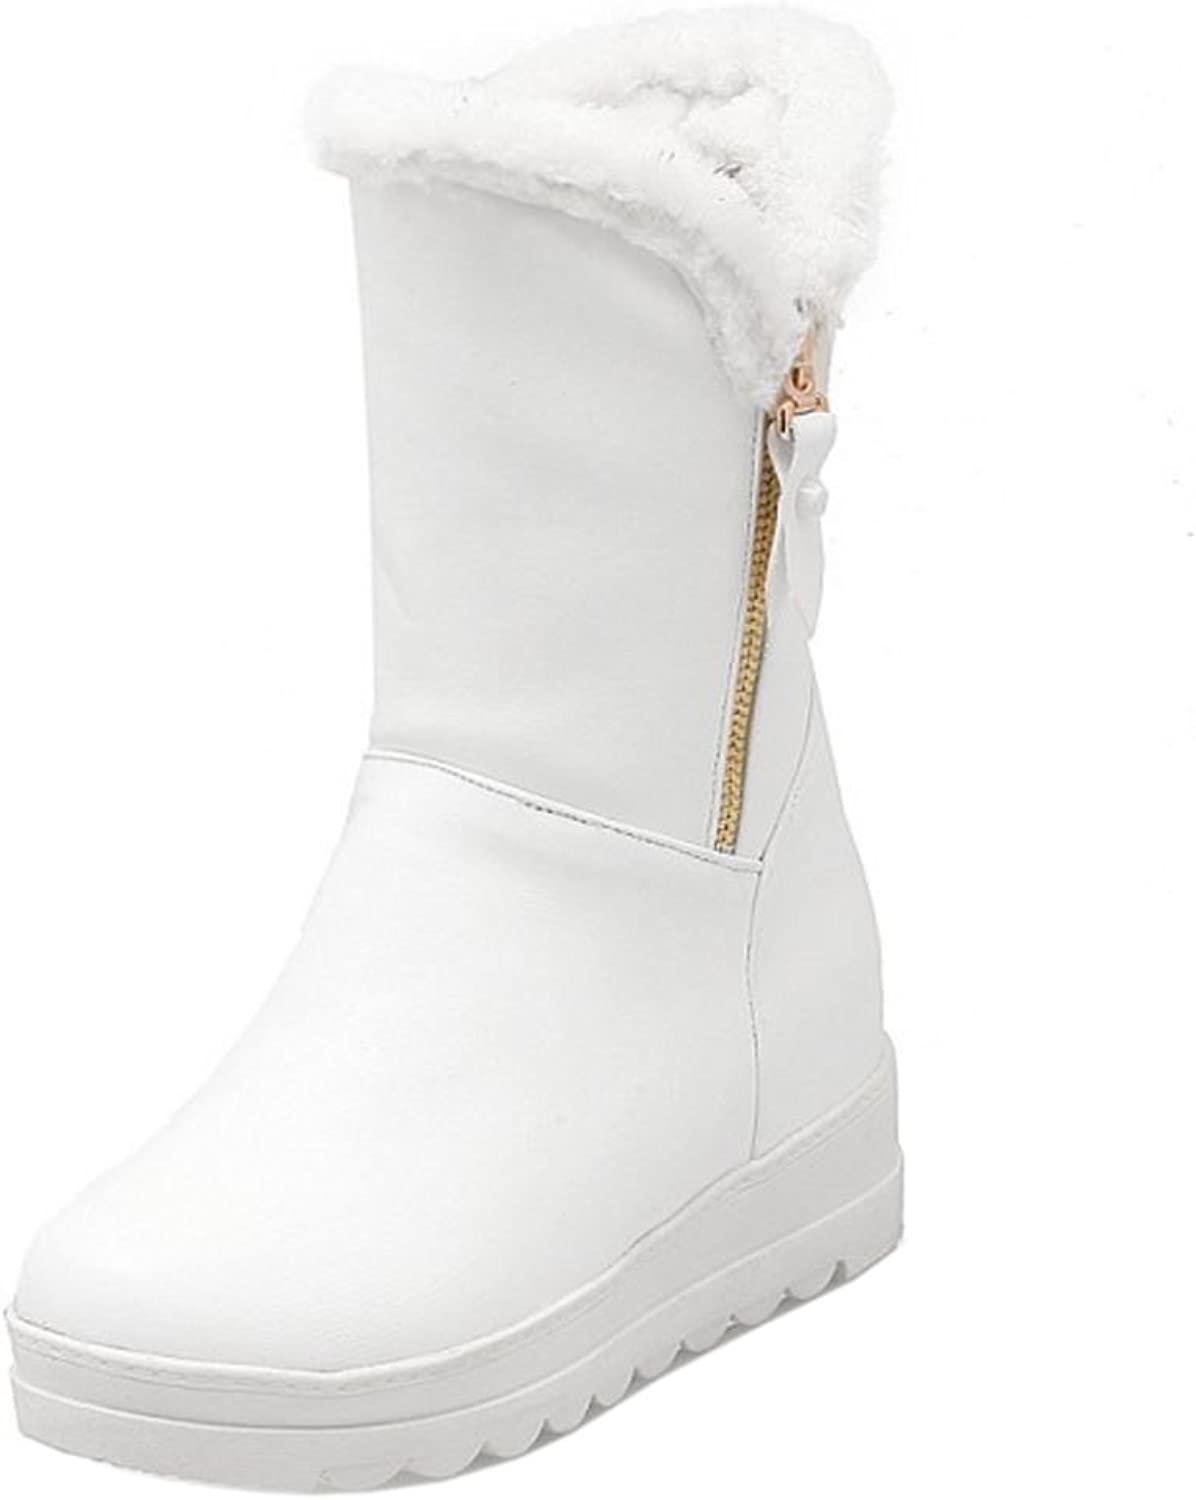 RizaBina Women Comfort Low Flats Snow Boots Pull On with Zip